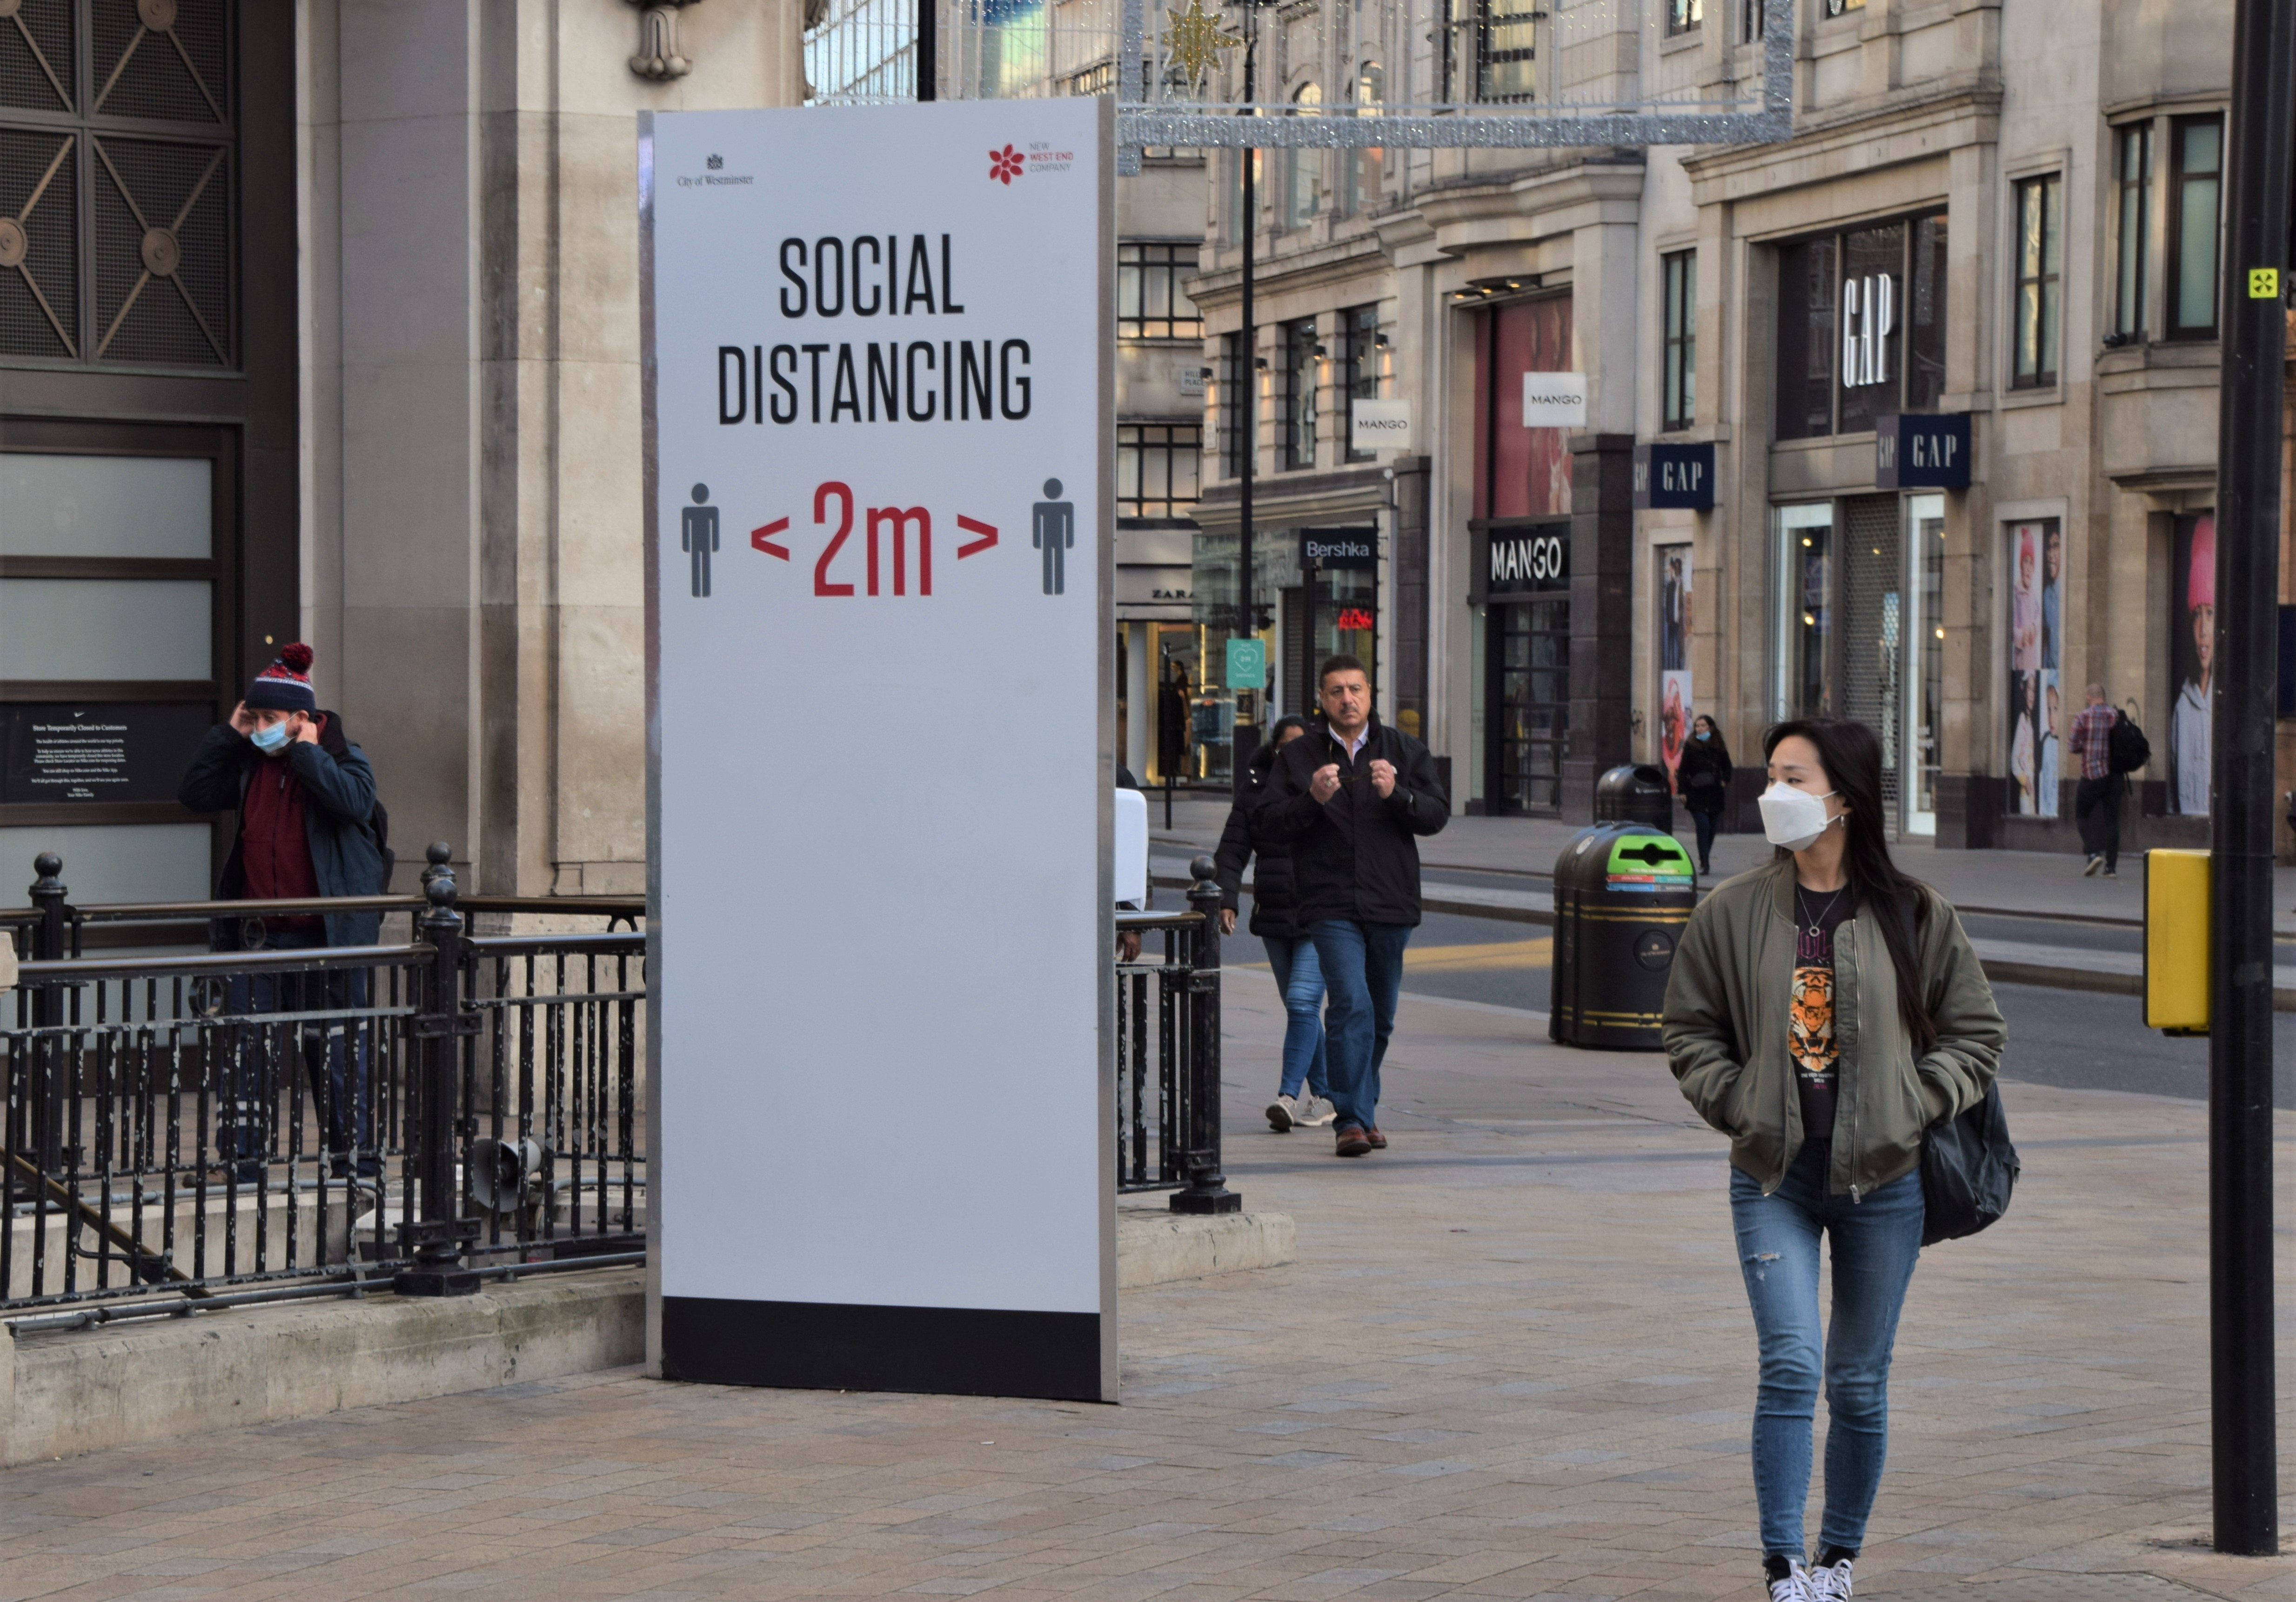 A woman wearing a face mask as a precaution walking past a social distancing sign on Oxford Street. Most shops, restaurants and businesses have closed as the second month-long nationwide Covid 19 lockdown begins in England. (Photo by Vuk Valcic / SOPA Images/Sipa USA)